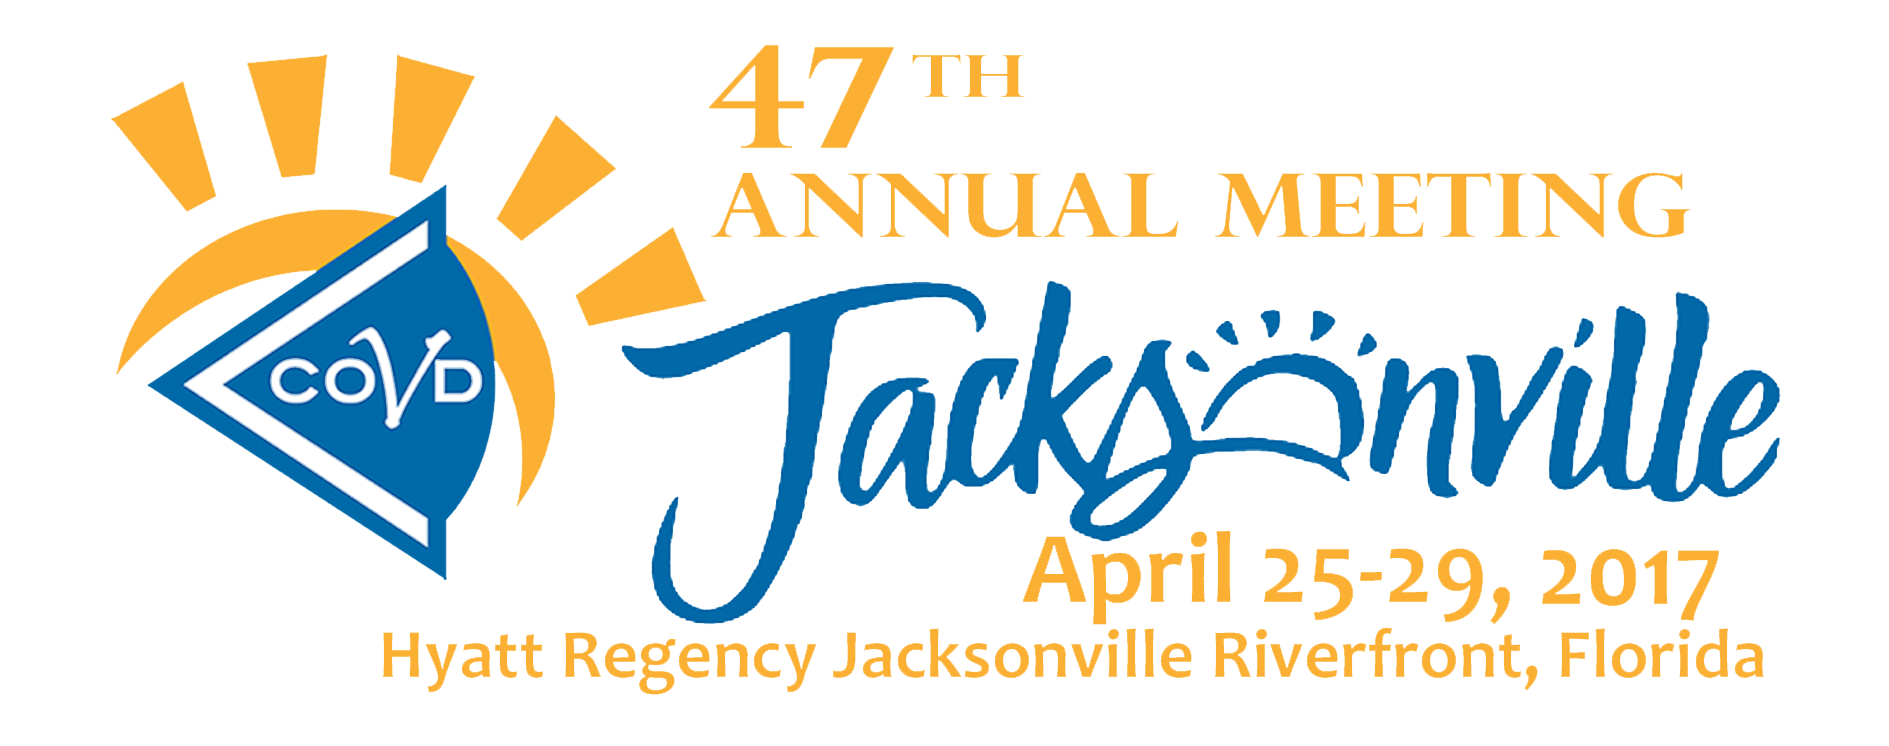 47th Annual Meeting April 24-29, 2017 Jacksonville, Florida